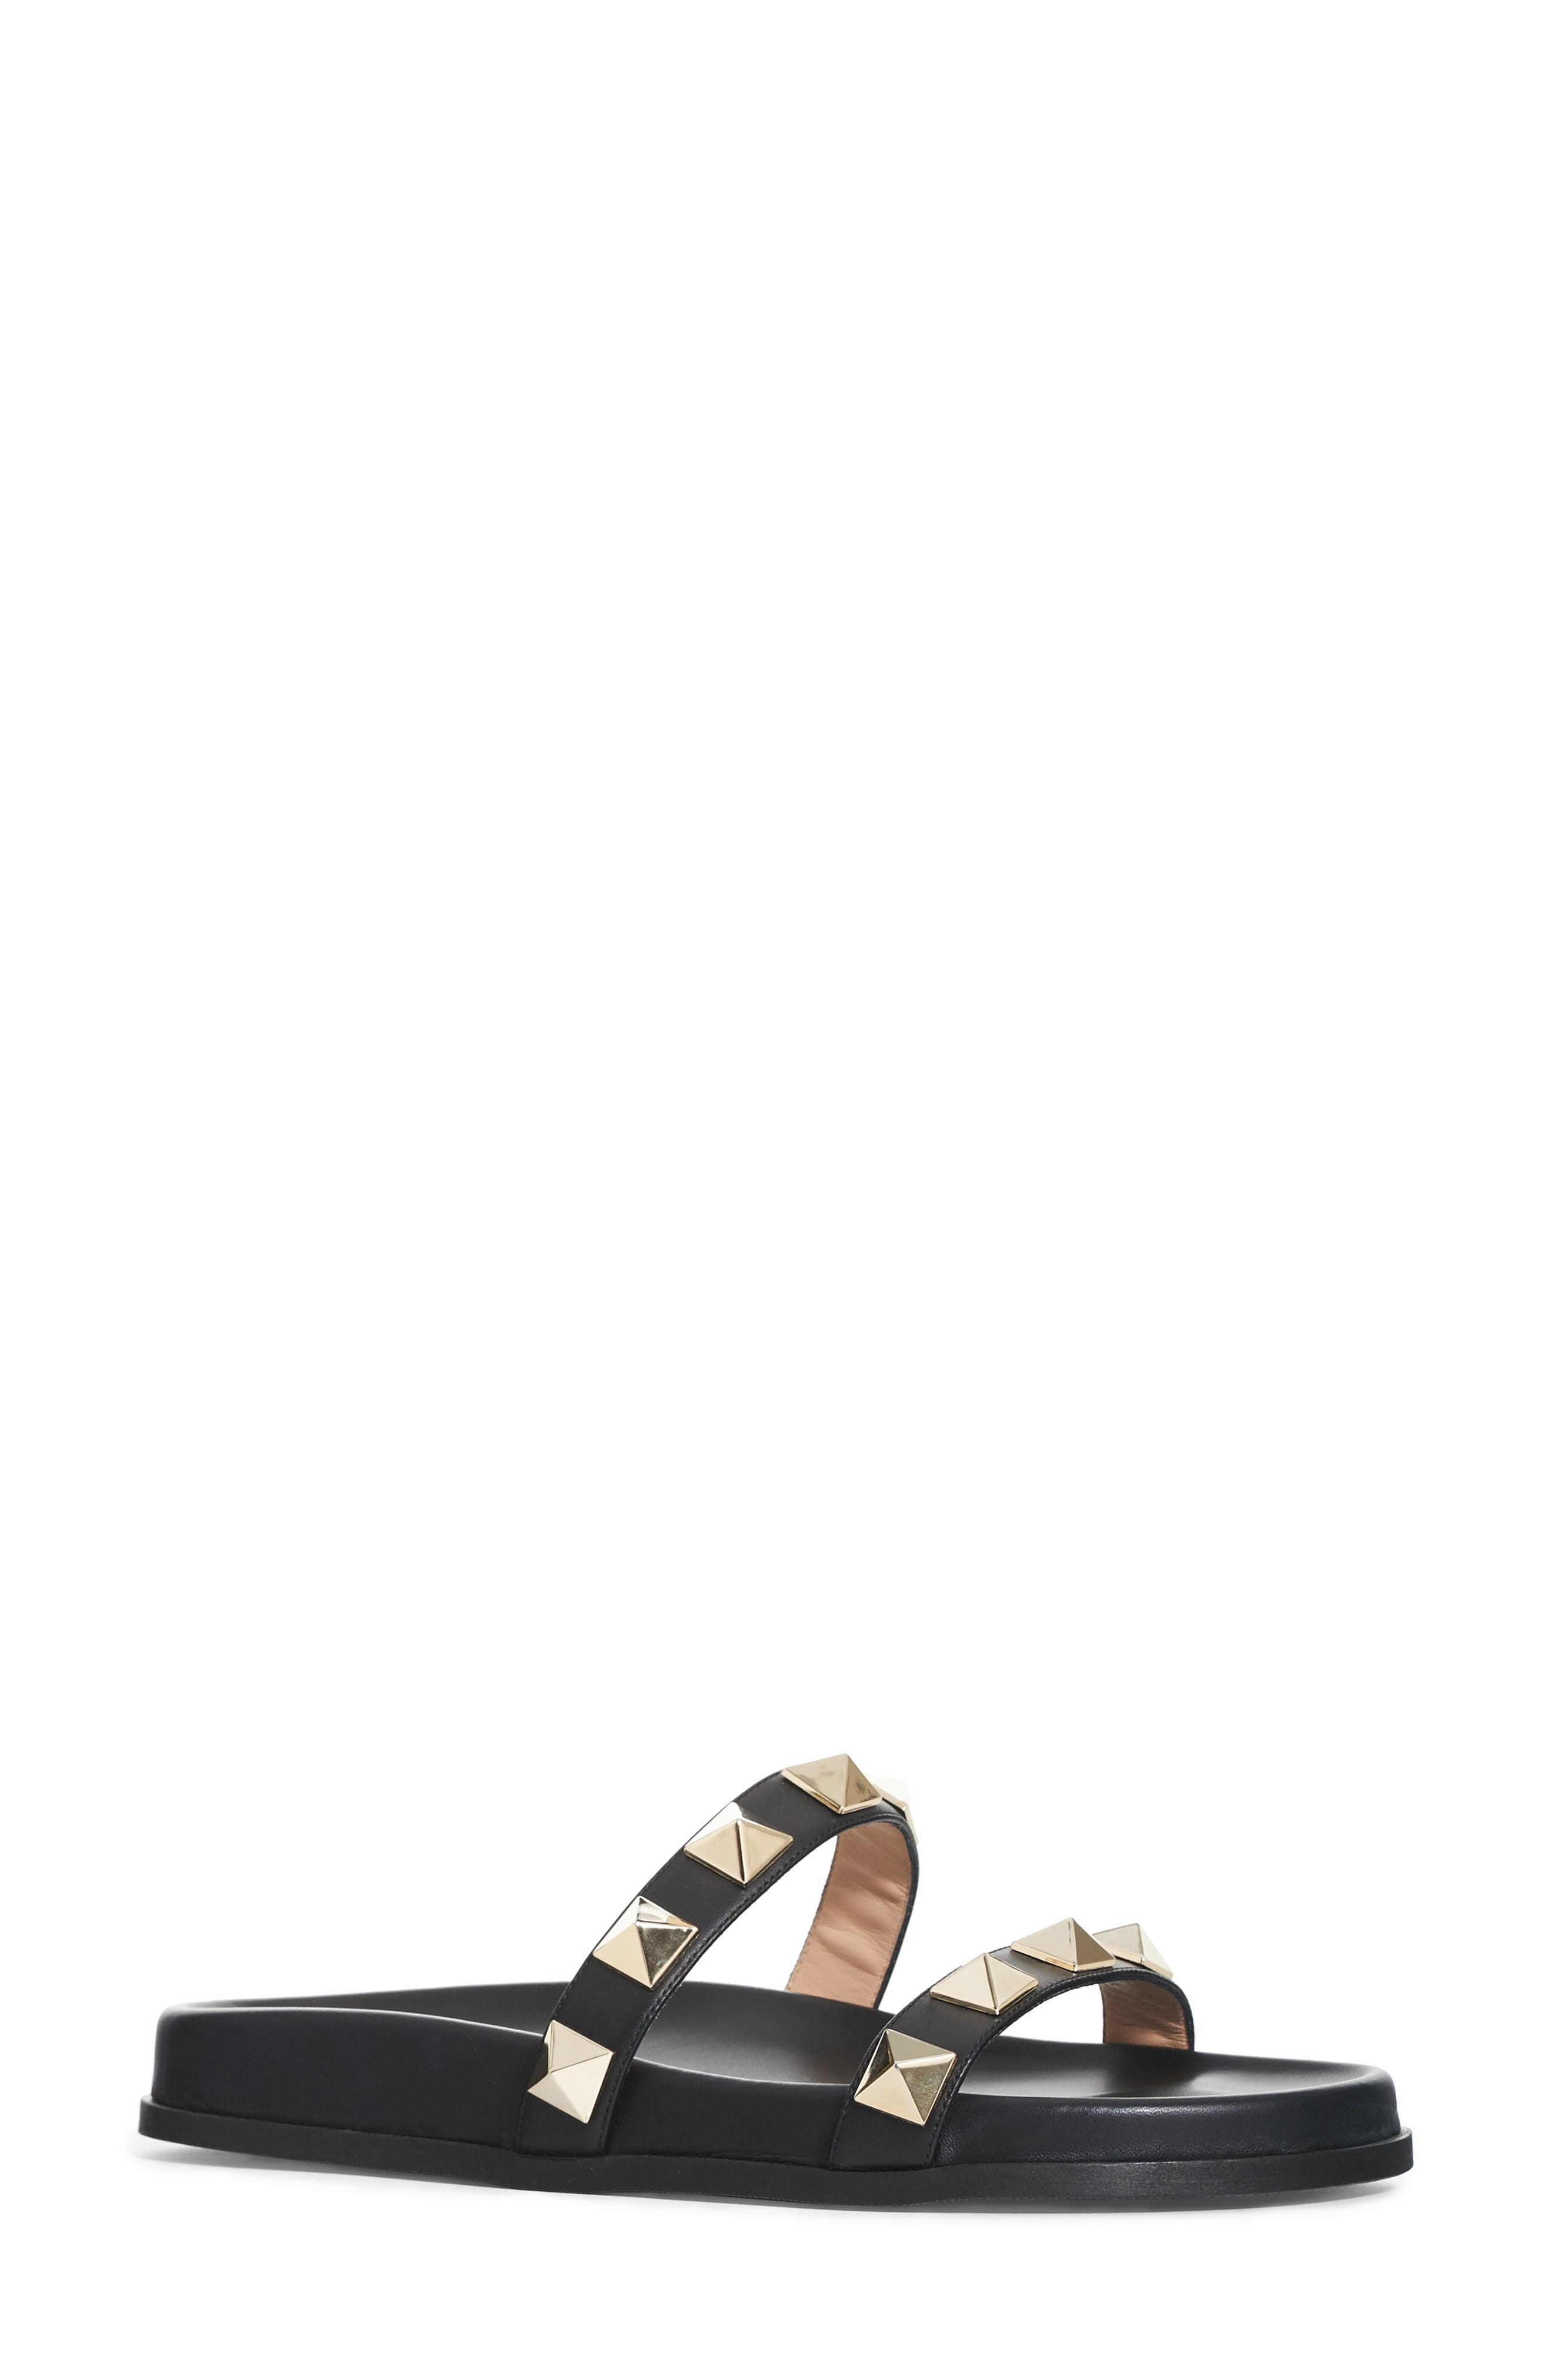 Alternate Image 1 Selected - VALENTINO GARAVANI Rockstud Lock Slide Sandal (Women)